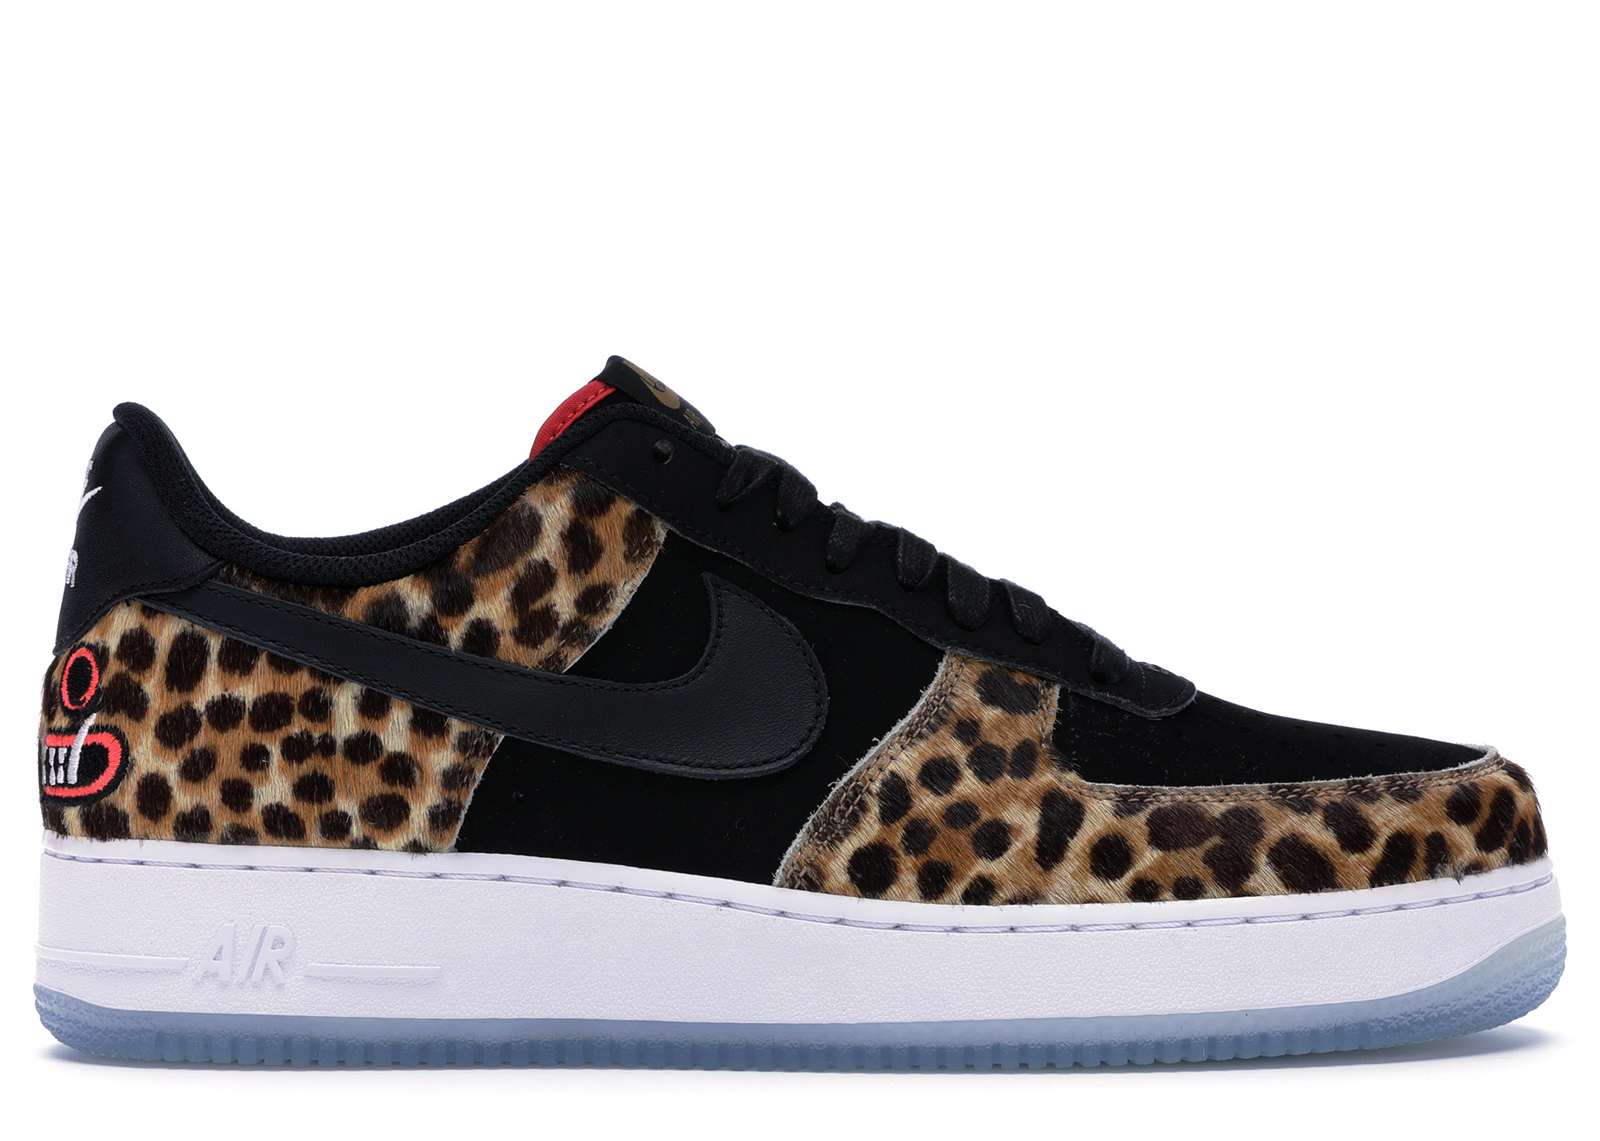 Nike Air Force 1 Low LHM